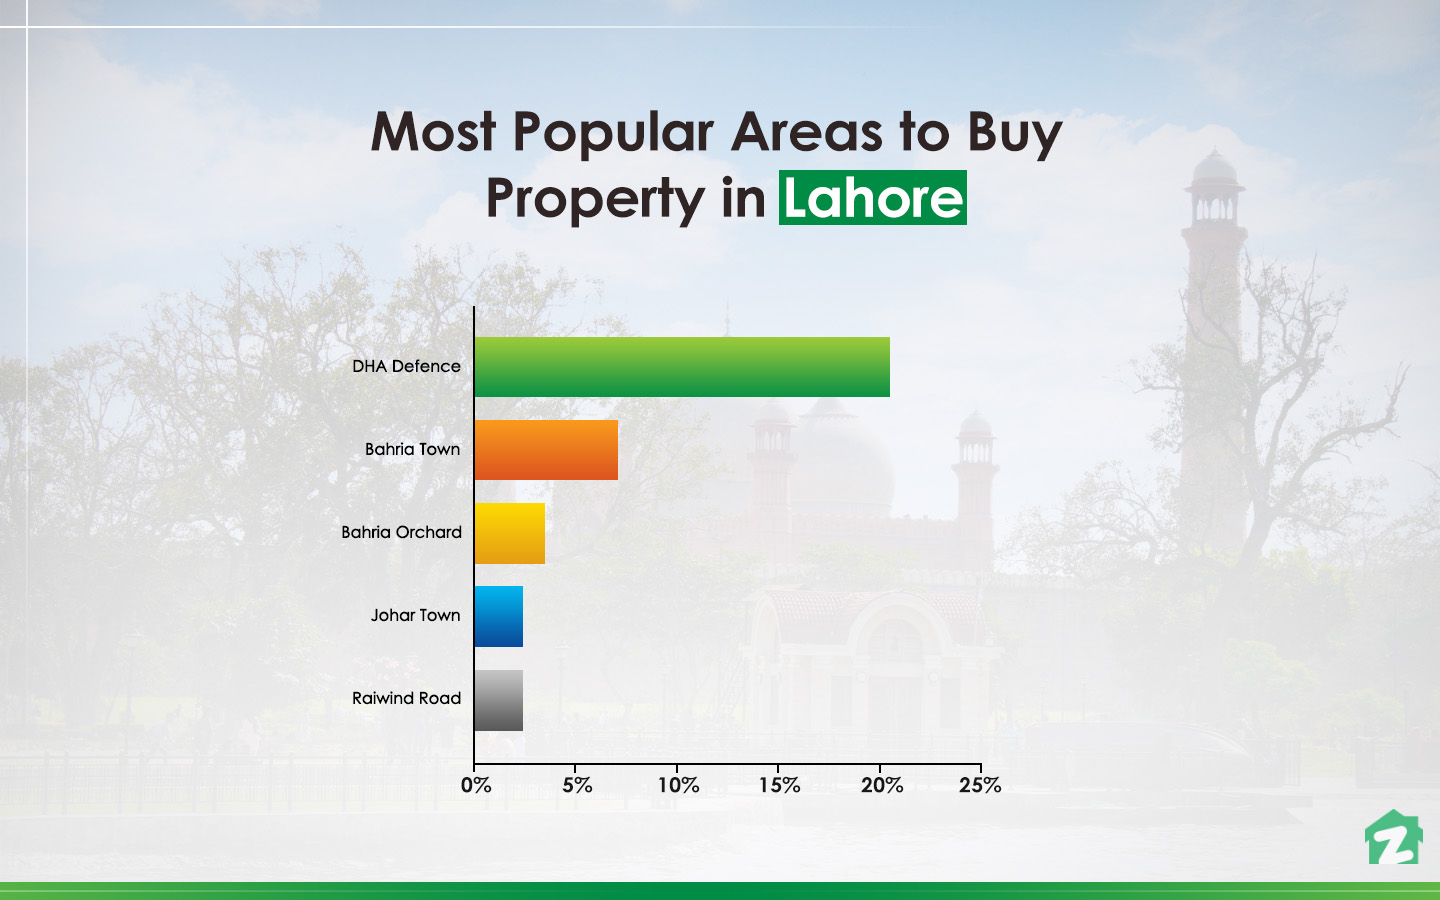 famous areas for buying properties in Lahore